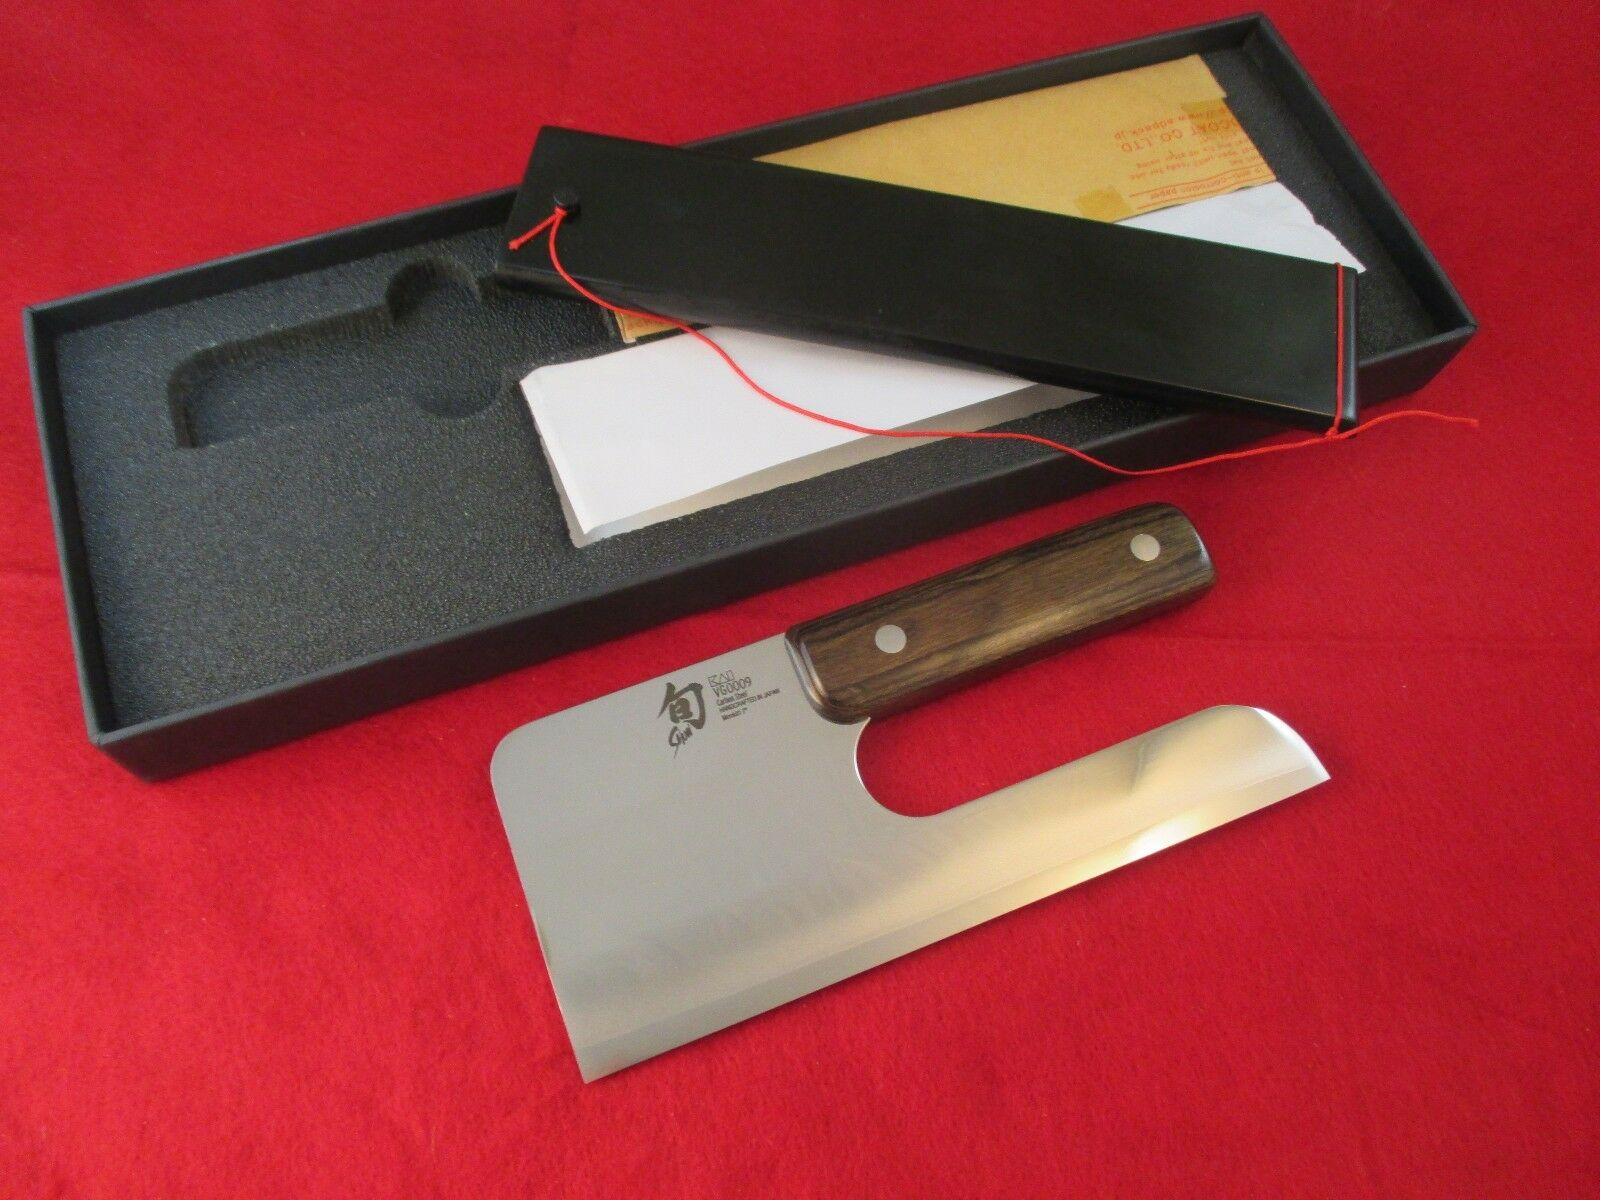 Shun Blau 7 inch Menkiri Knife with Saya - VG0009